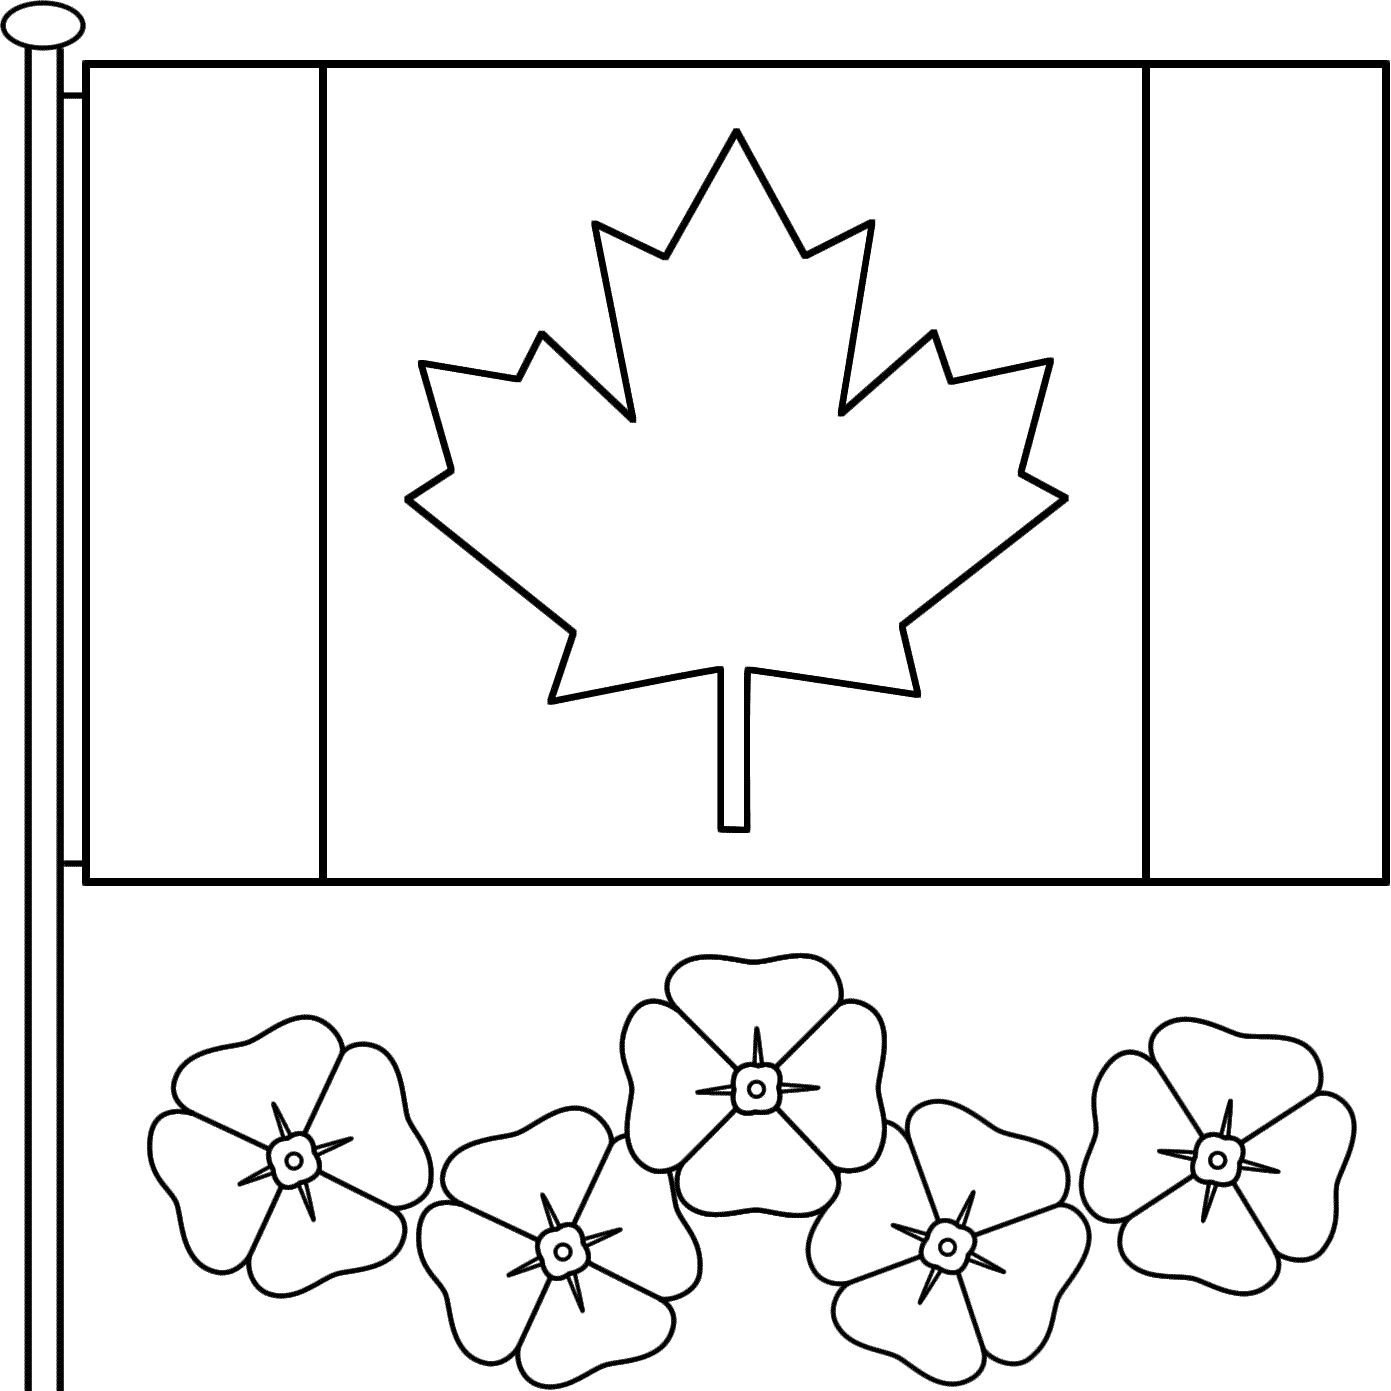 Coloring Pages For Remembrance Day : Remembrance day coloring pages home